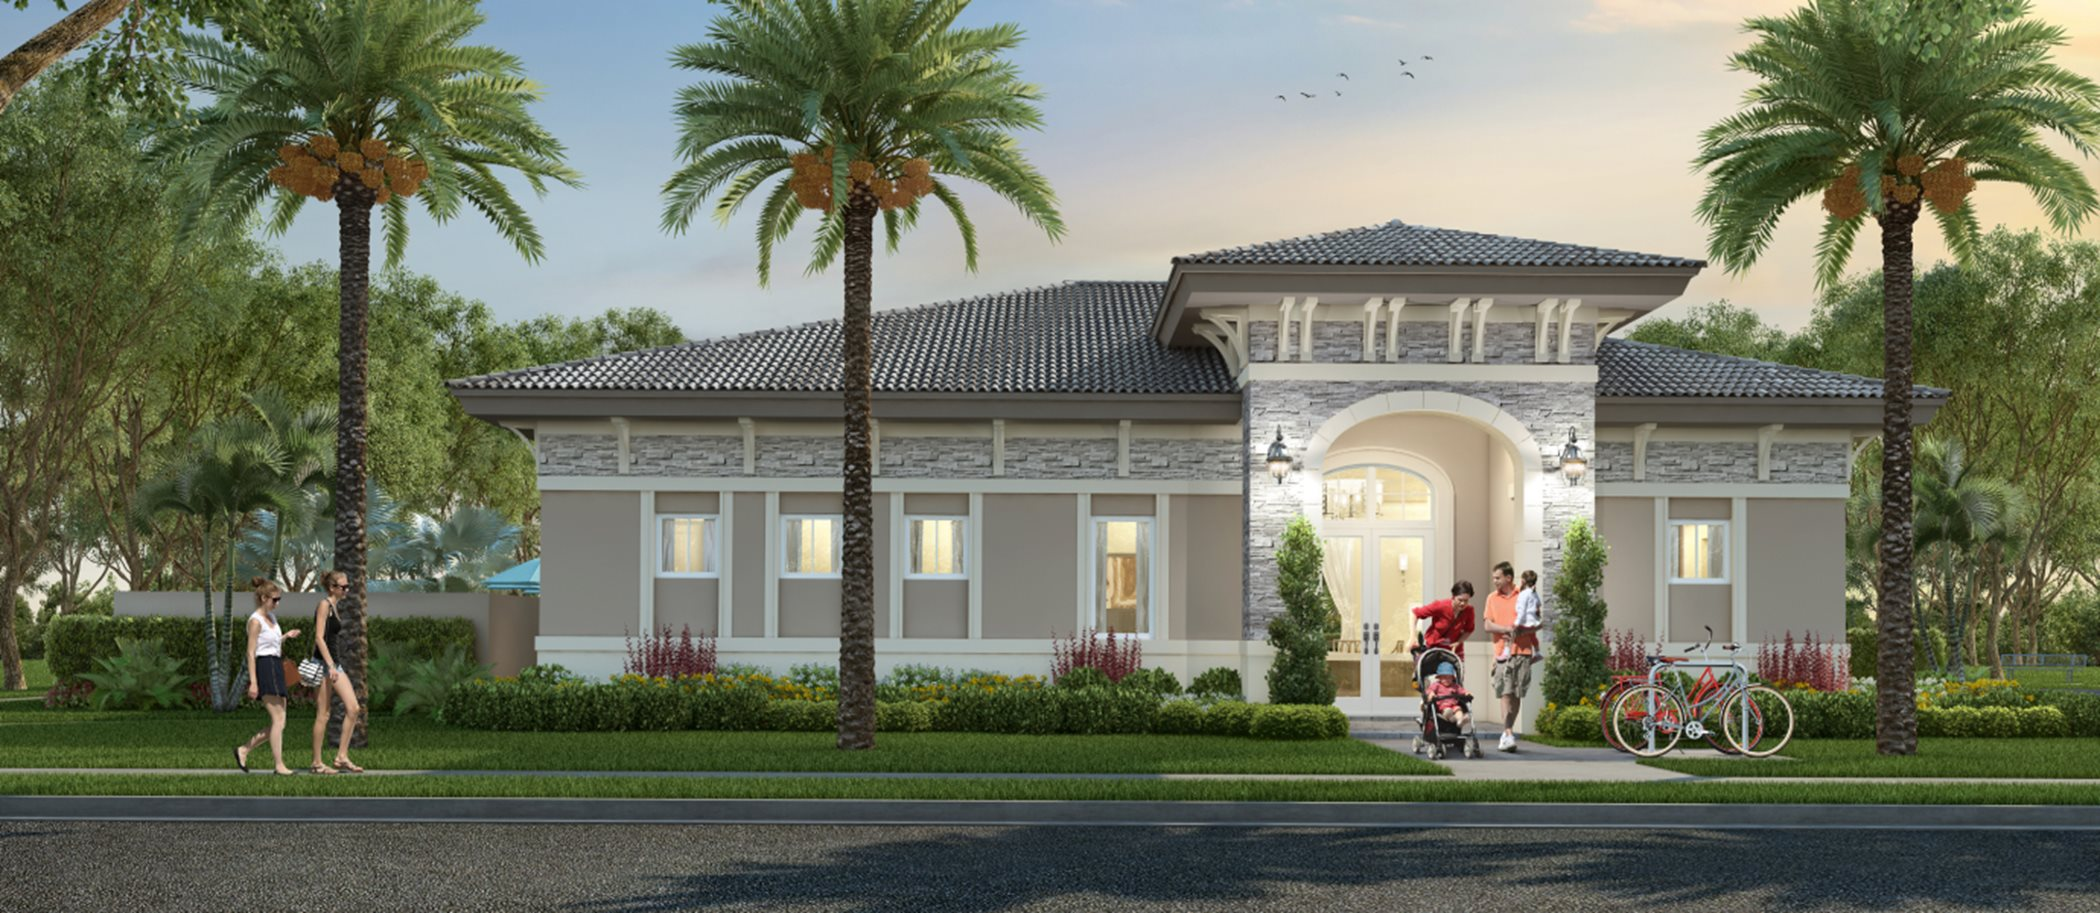 The Riviera newly designed homes easy access to Miami's downtown hub and the Florida Keys